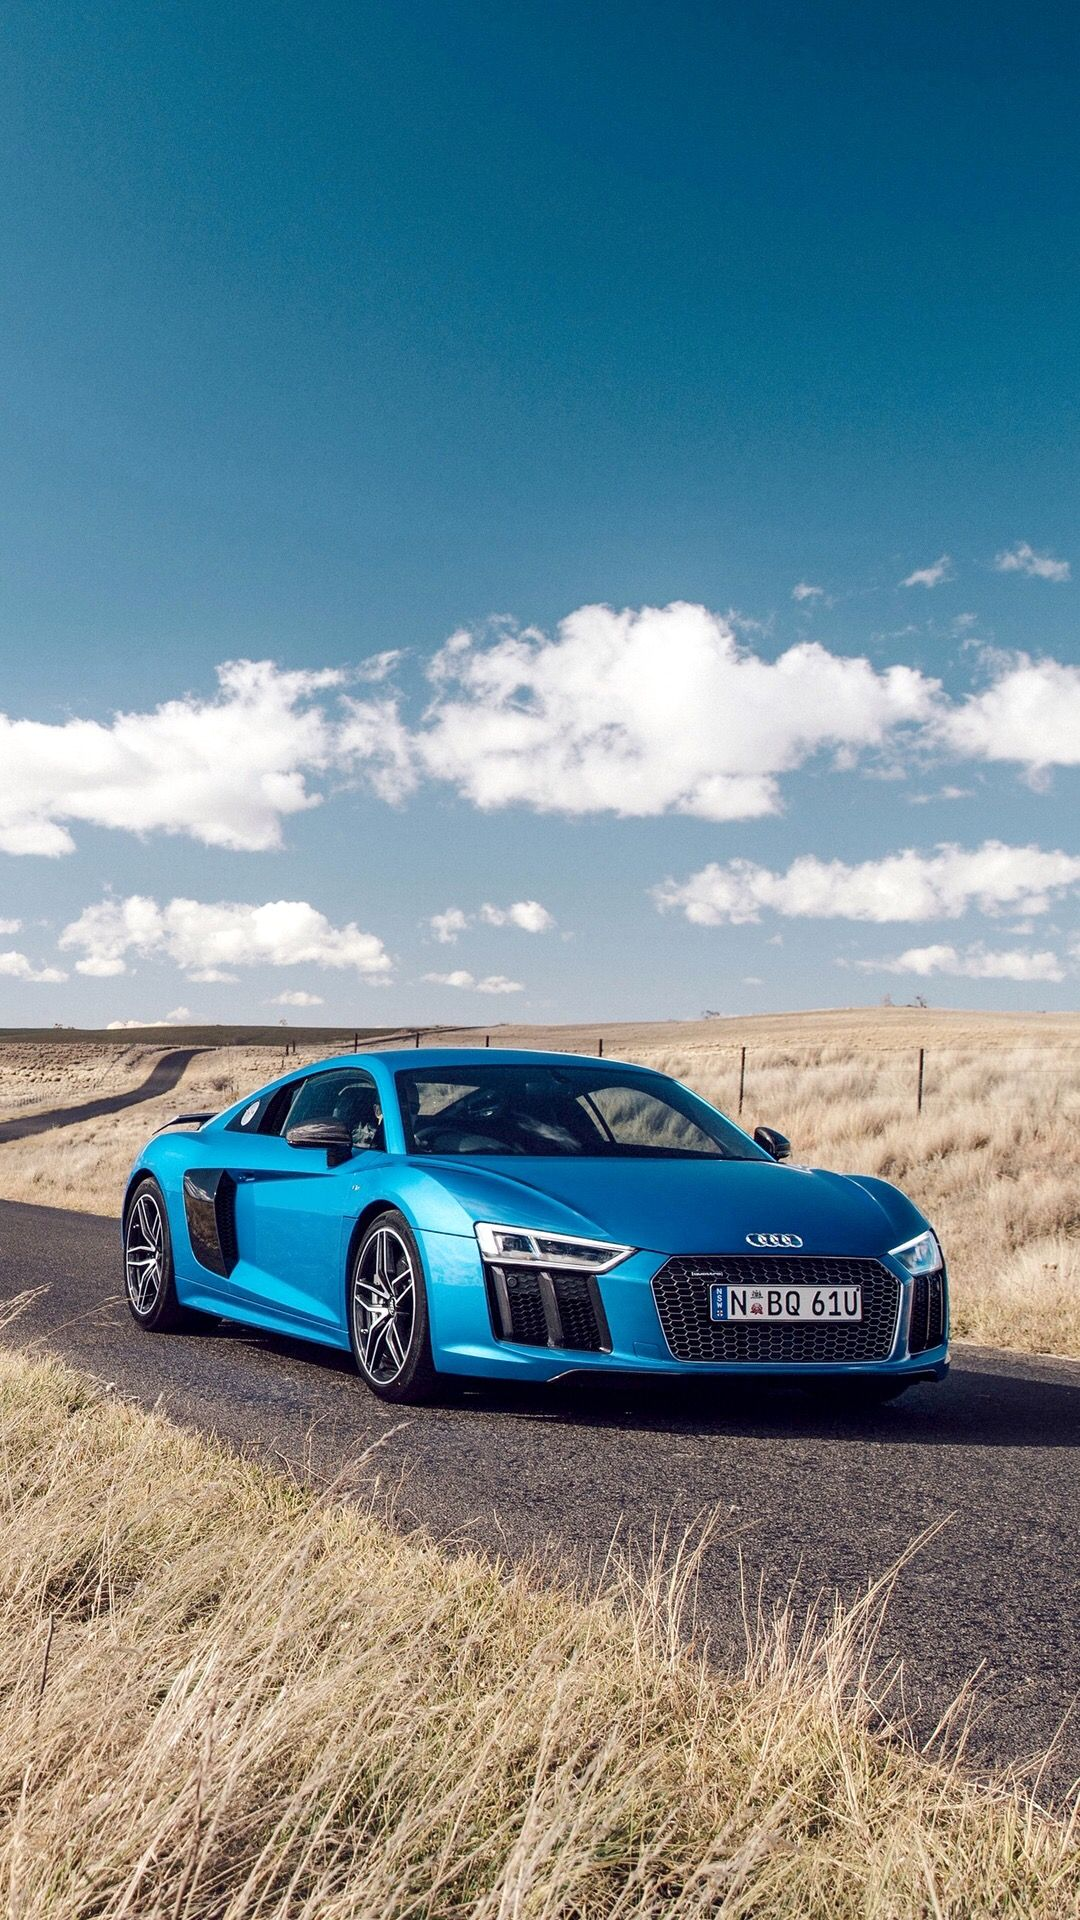 Pin By Mohamed Mohe On Audi With Images Audi R8 V10 Audi R8 Blue